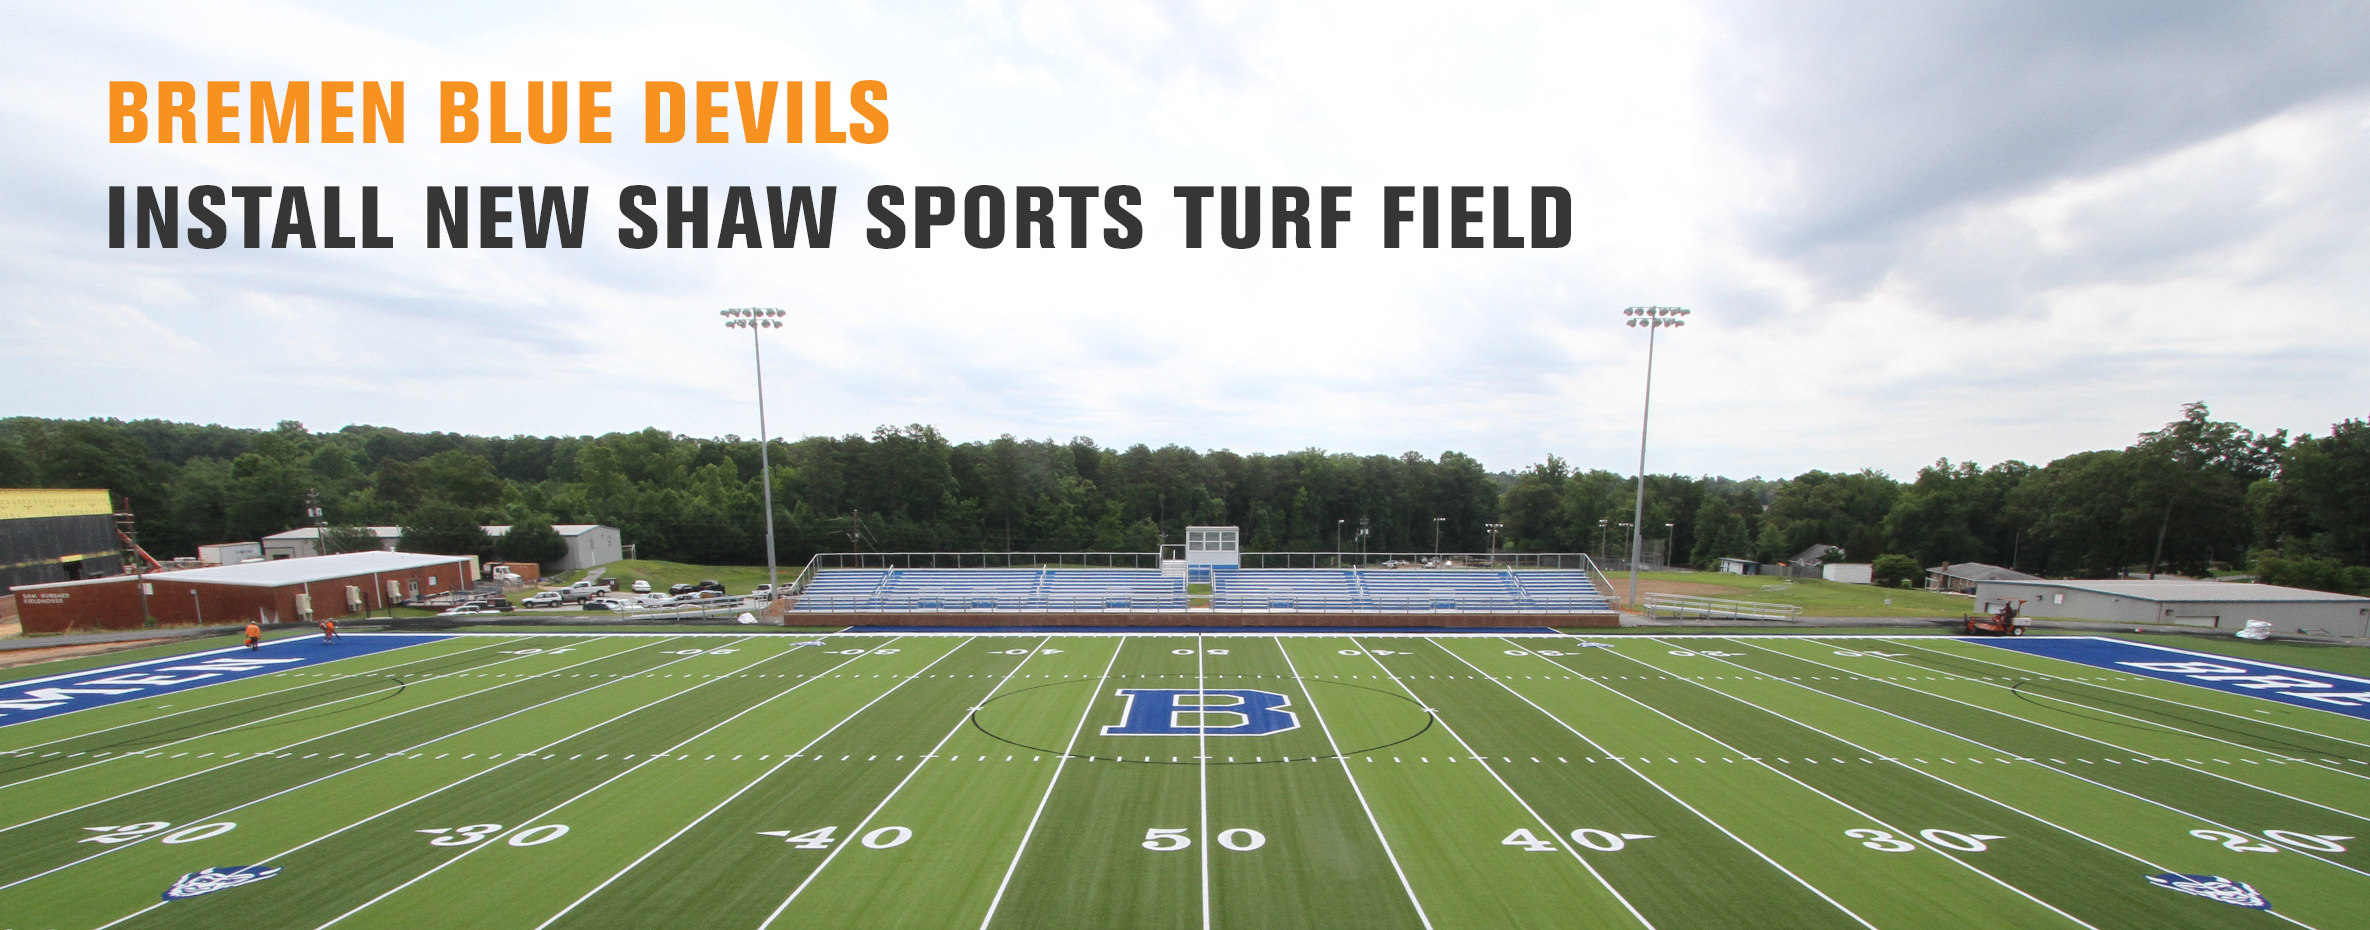 BREMEN BLUE DEVILS INSTALL NEW SHAW SPORTS TURF FIELD Image